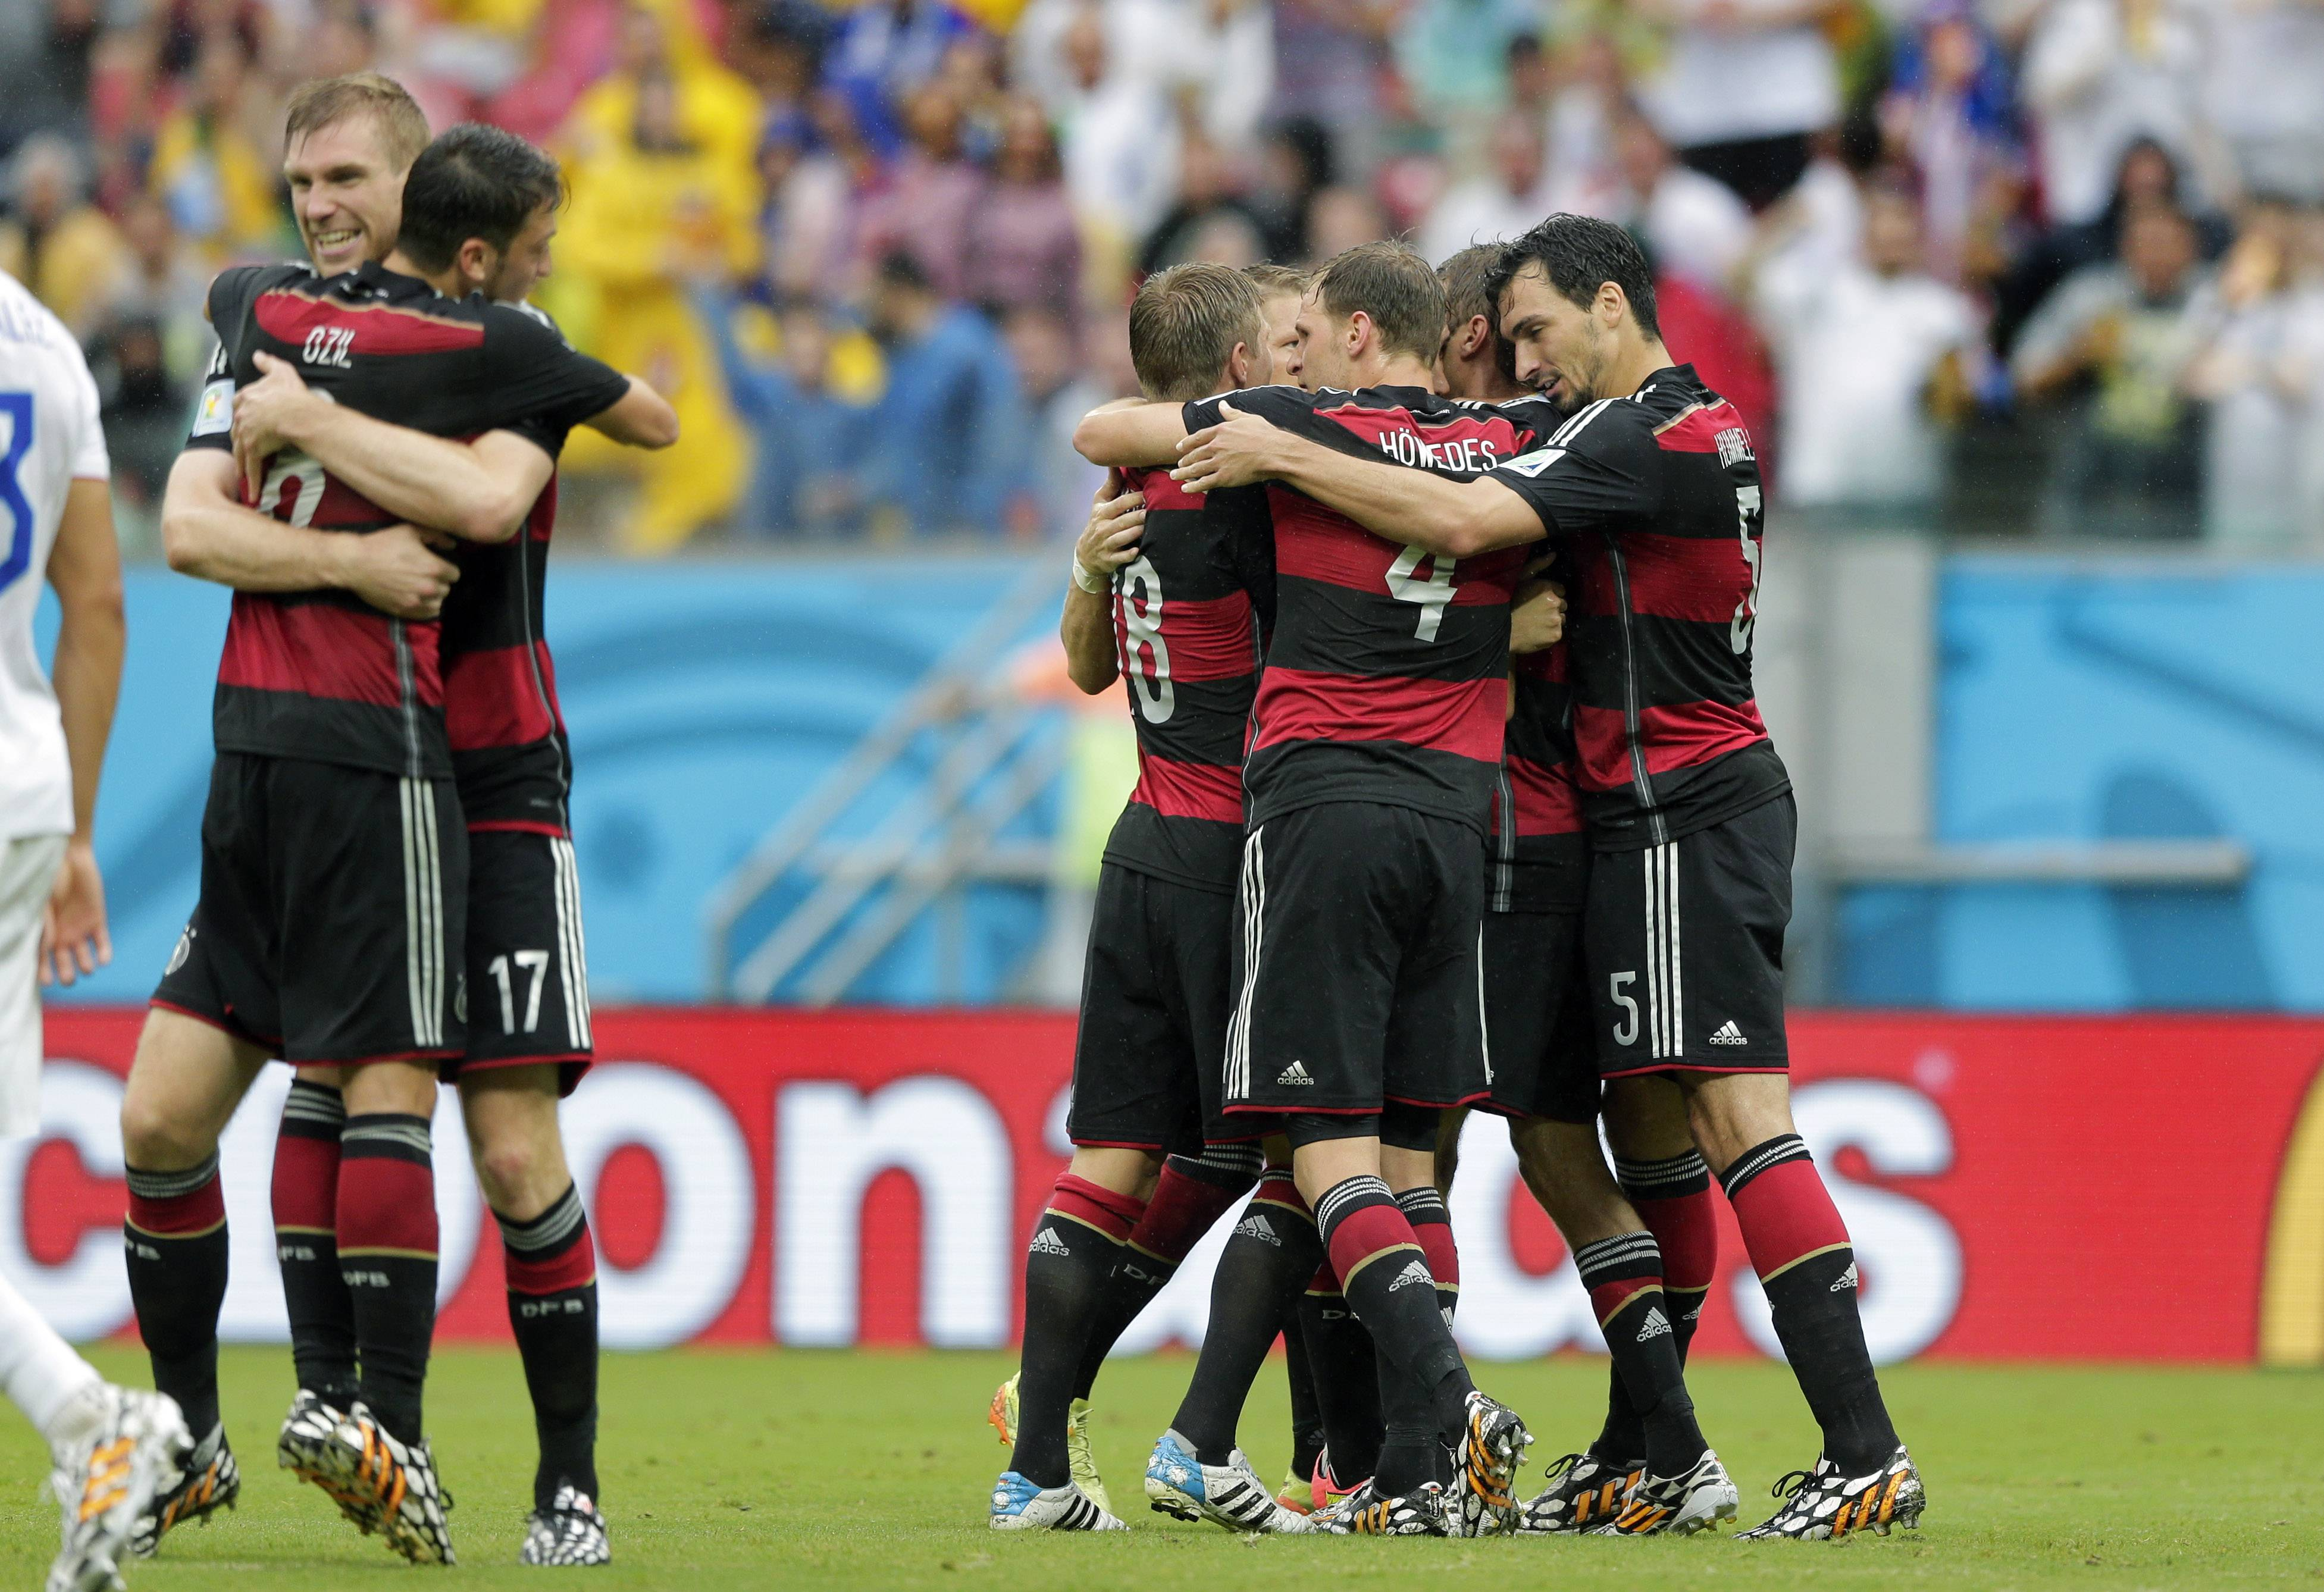 Germany players celebrate after scoring the opening goal during the group G World Cup soccer match between the USA and Germany at the Arena Pernambuco in Recife, Brazil, Thursday, June 26, 2014.